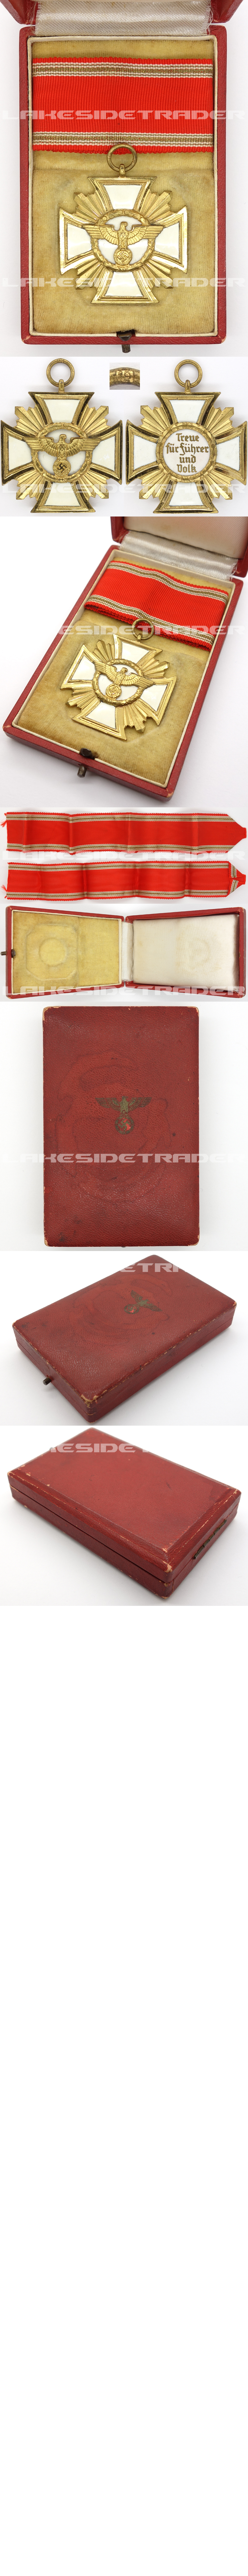 Cased 25 Year NSDAP Long Service by W. Deumer